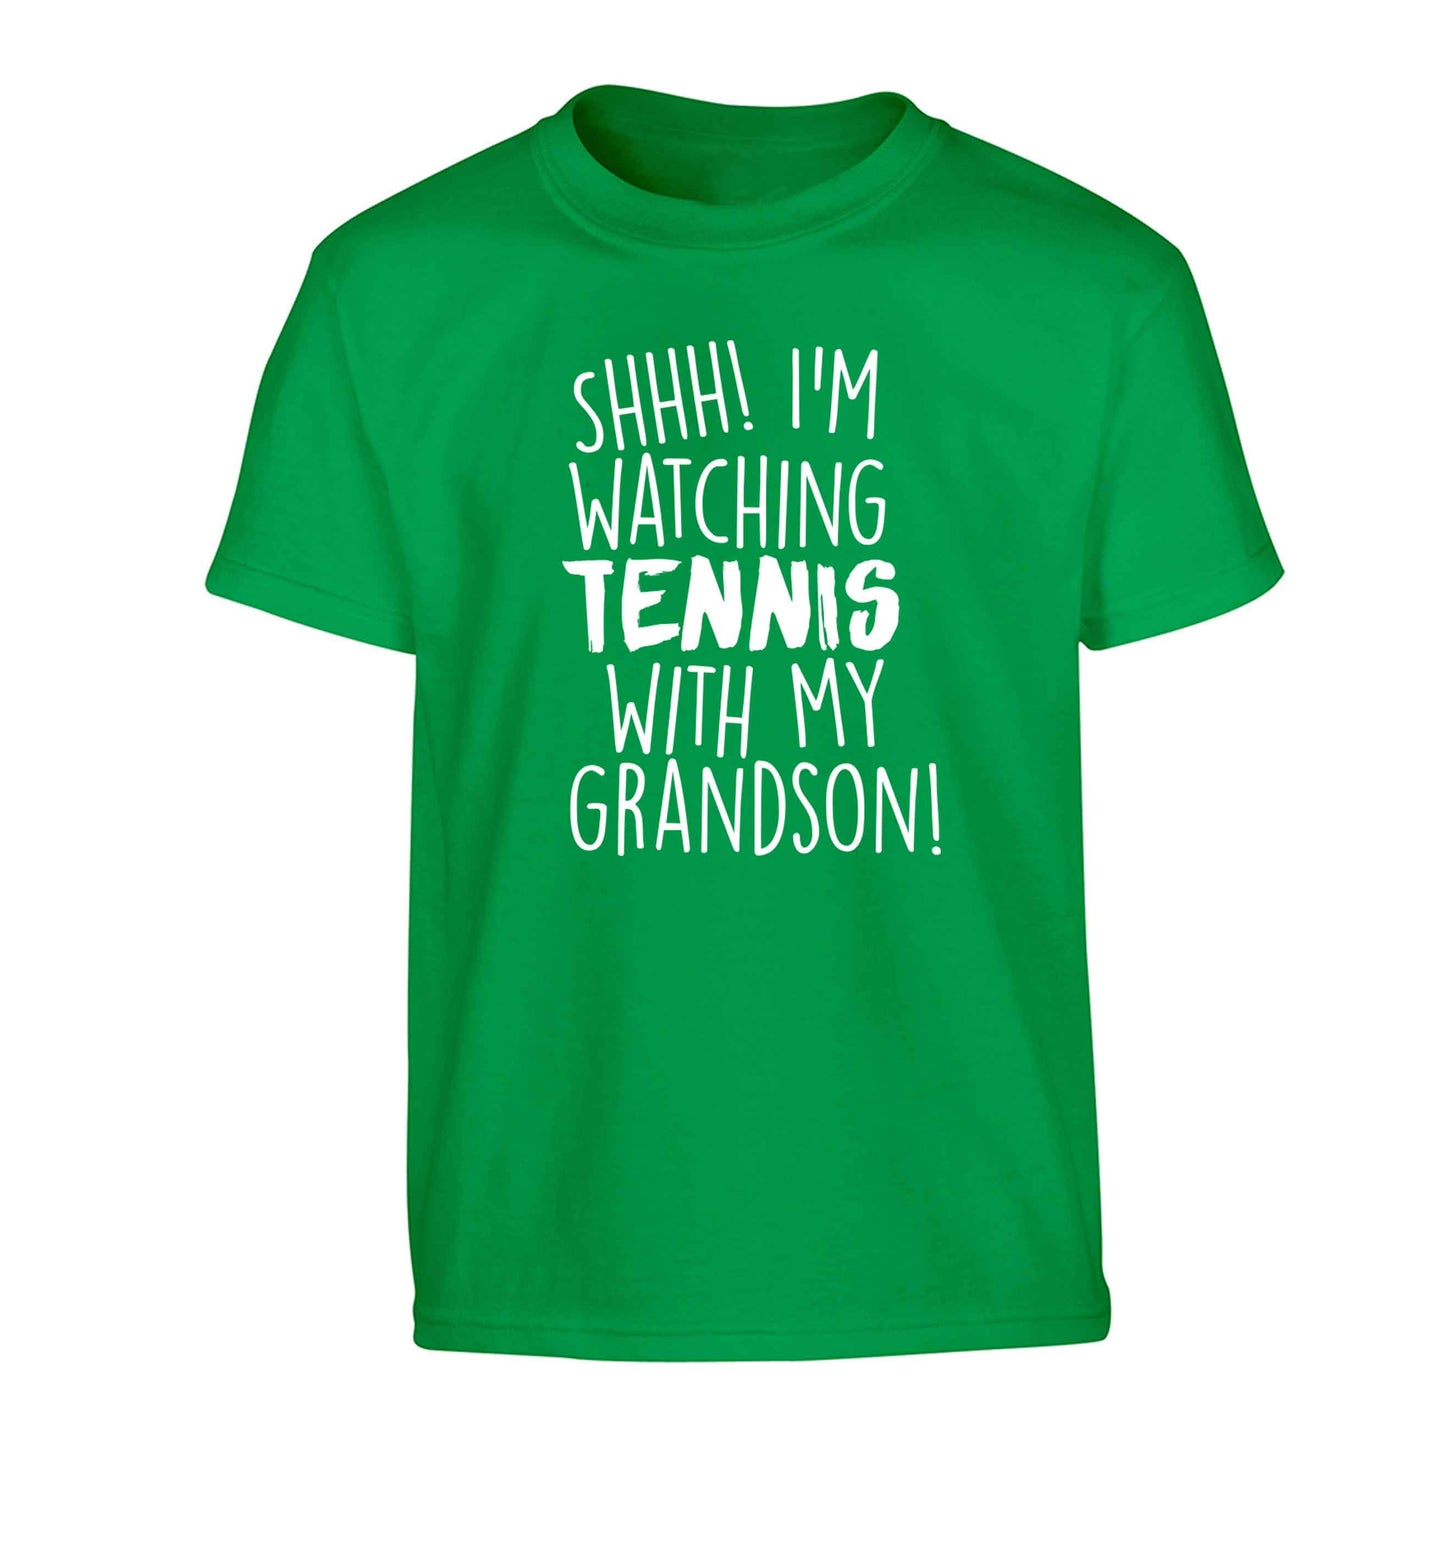 Shh! I'm watching tennis with my grandson! Children's green Tshirt 12-13 Years